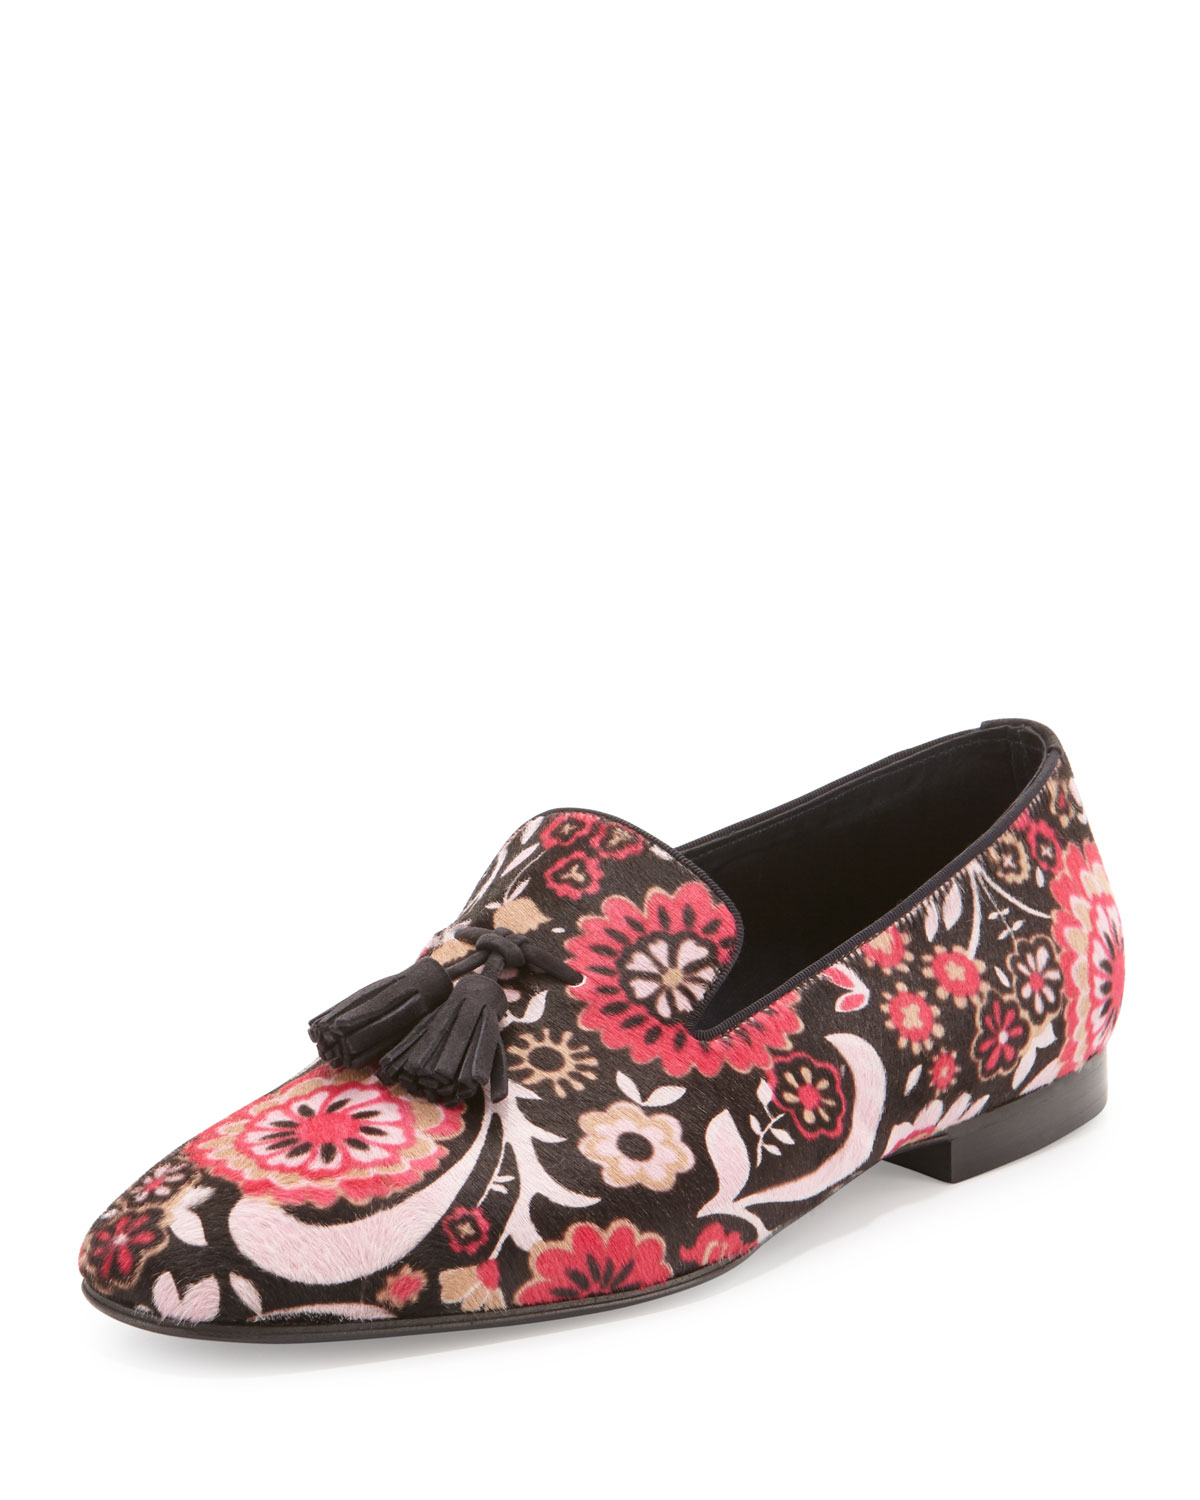 a9b006a9977 TOM FORD Chesterfield Floral-Print Calf Hair Tassel Loafer Shoes